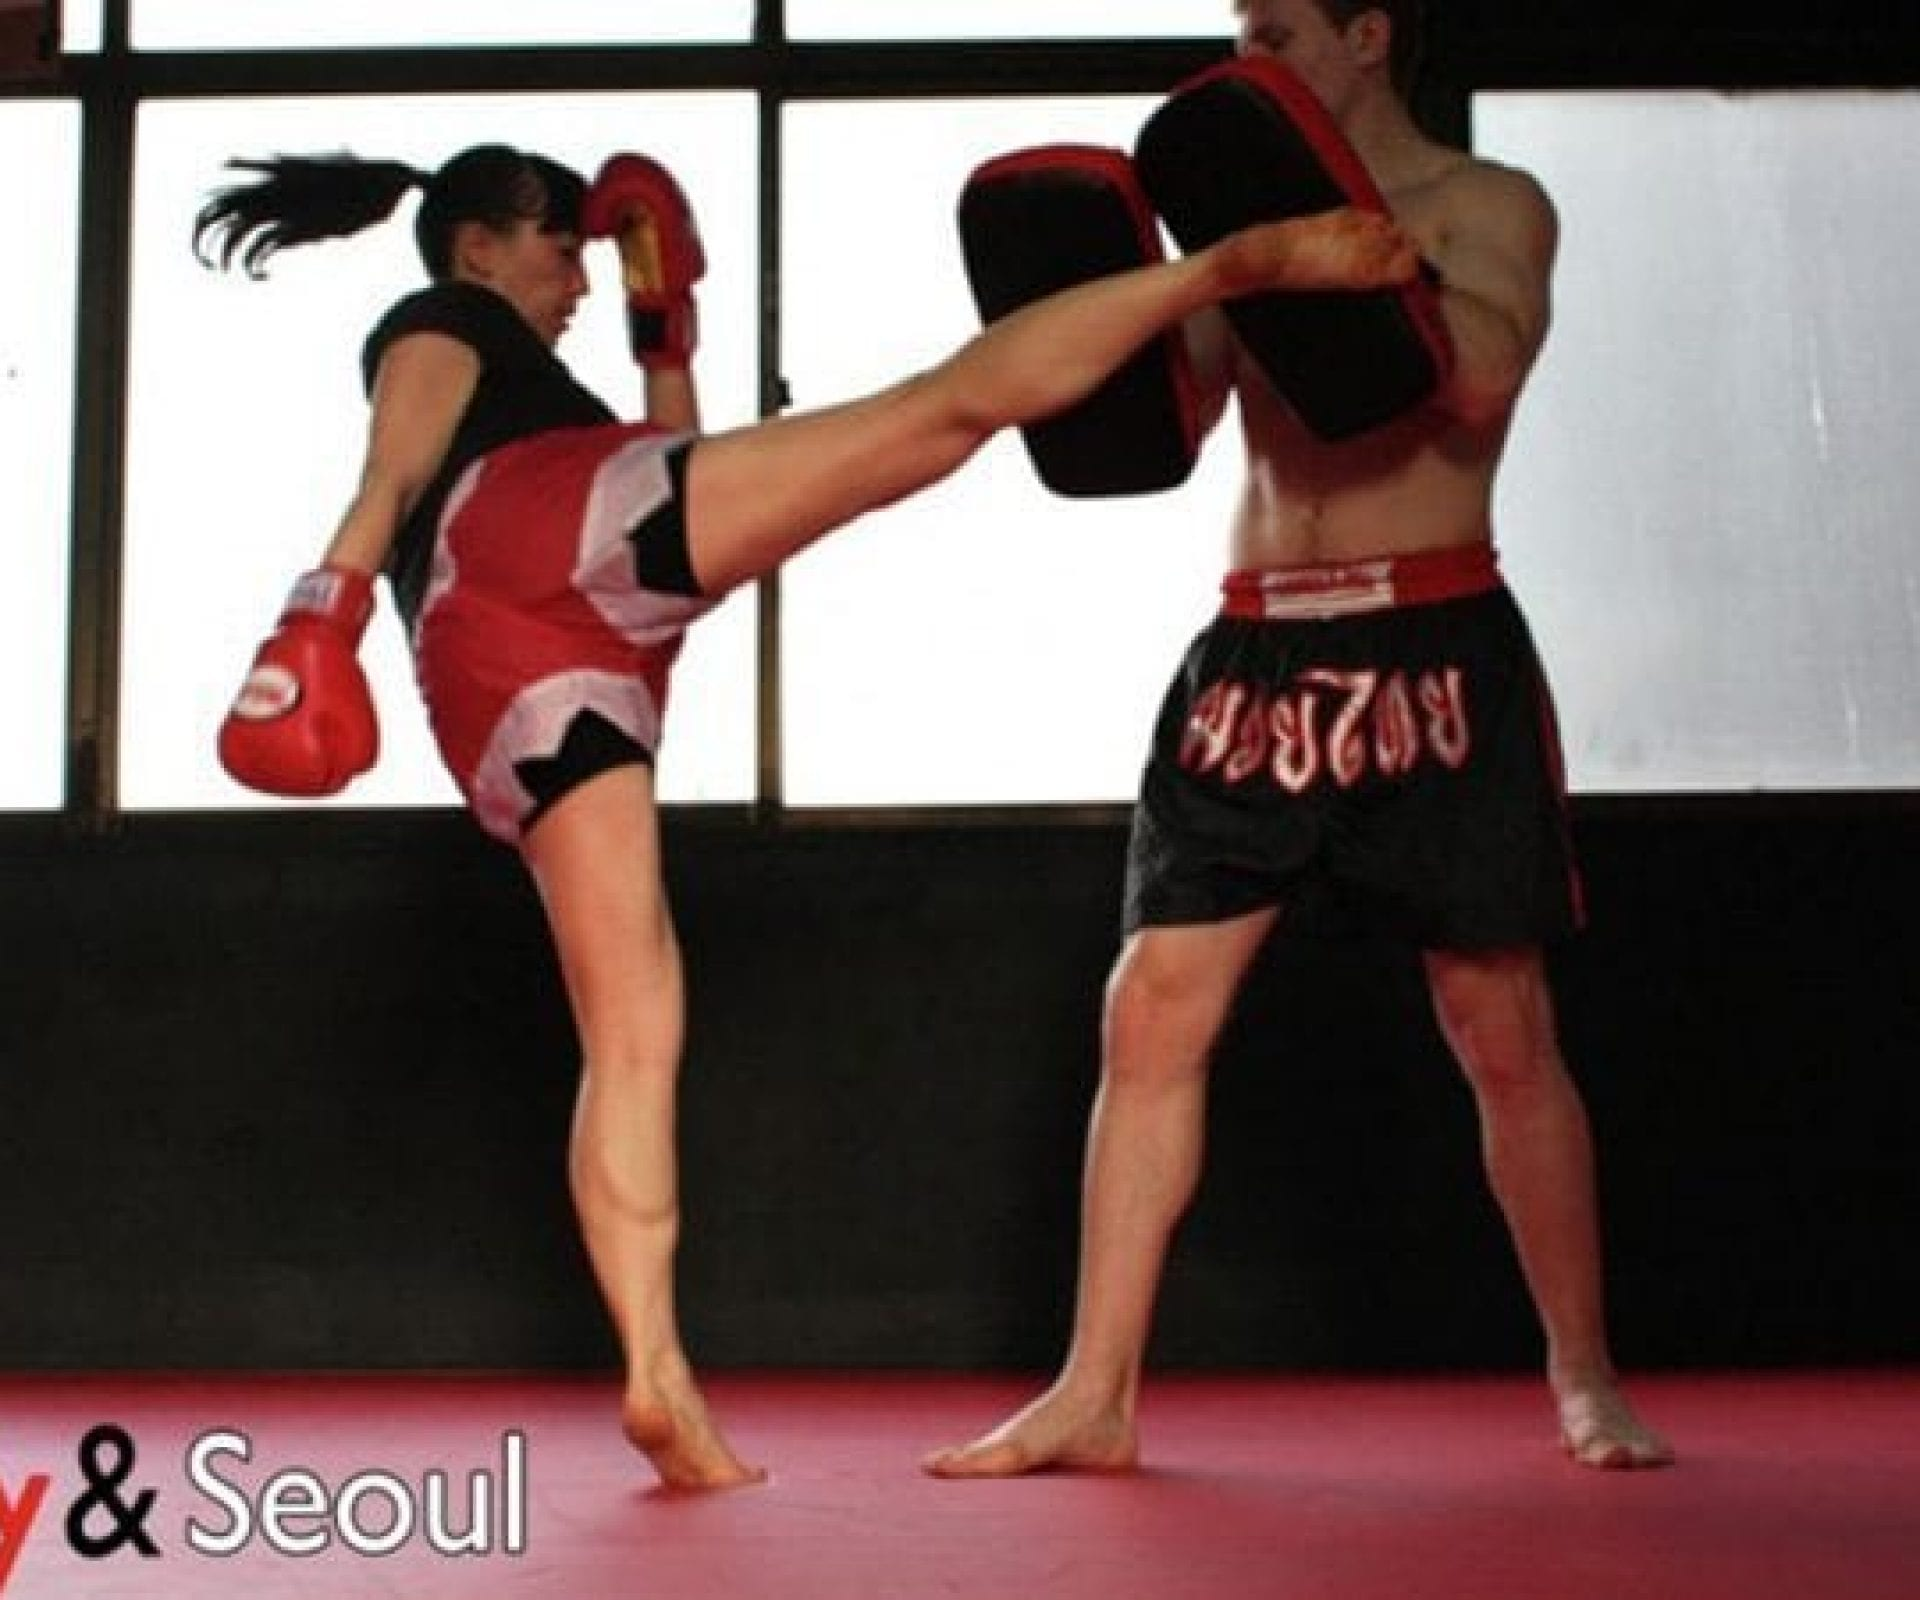 Body & Seoul Martial Arts And Fitness Center | Yongsan-gu, Seoul